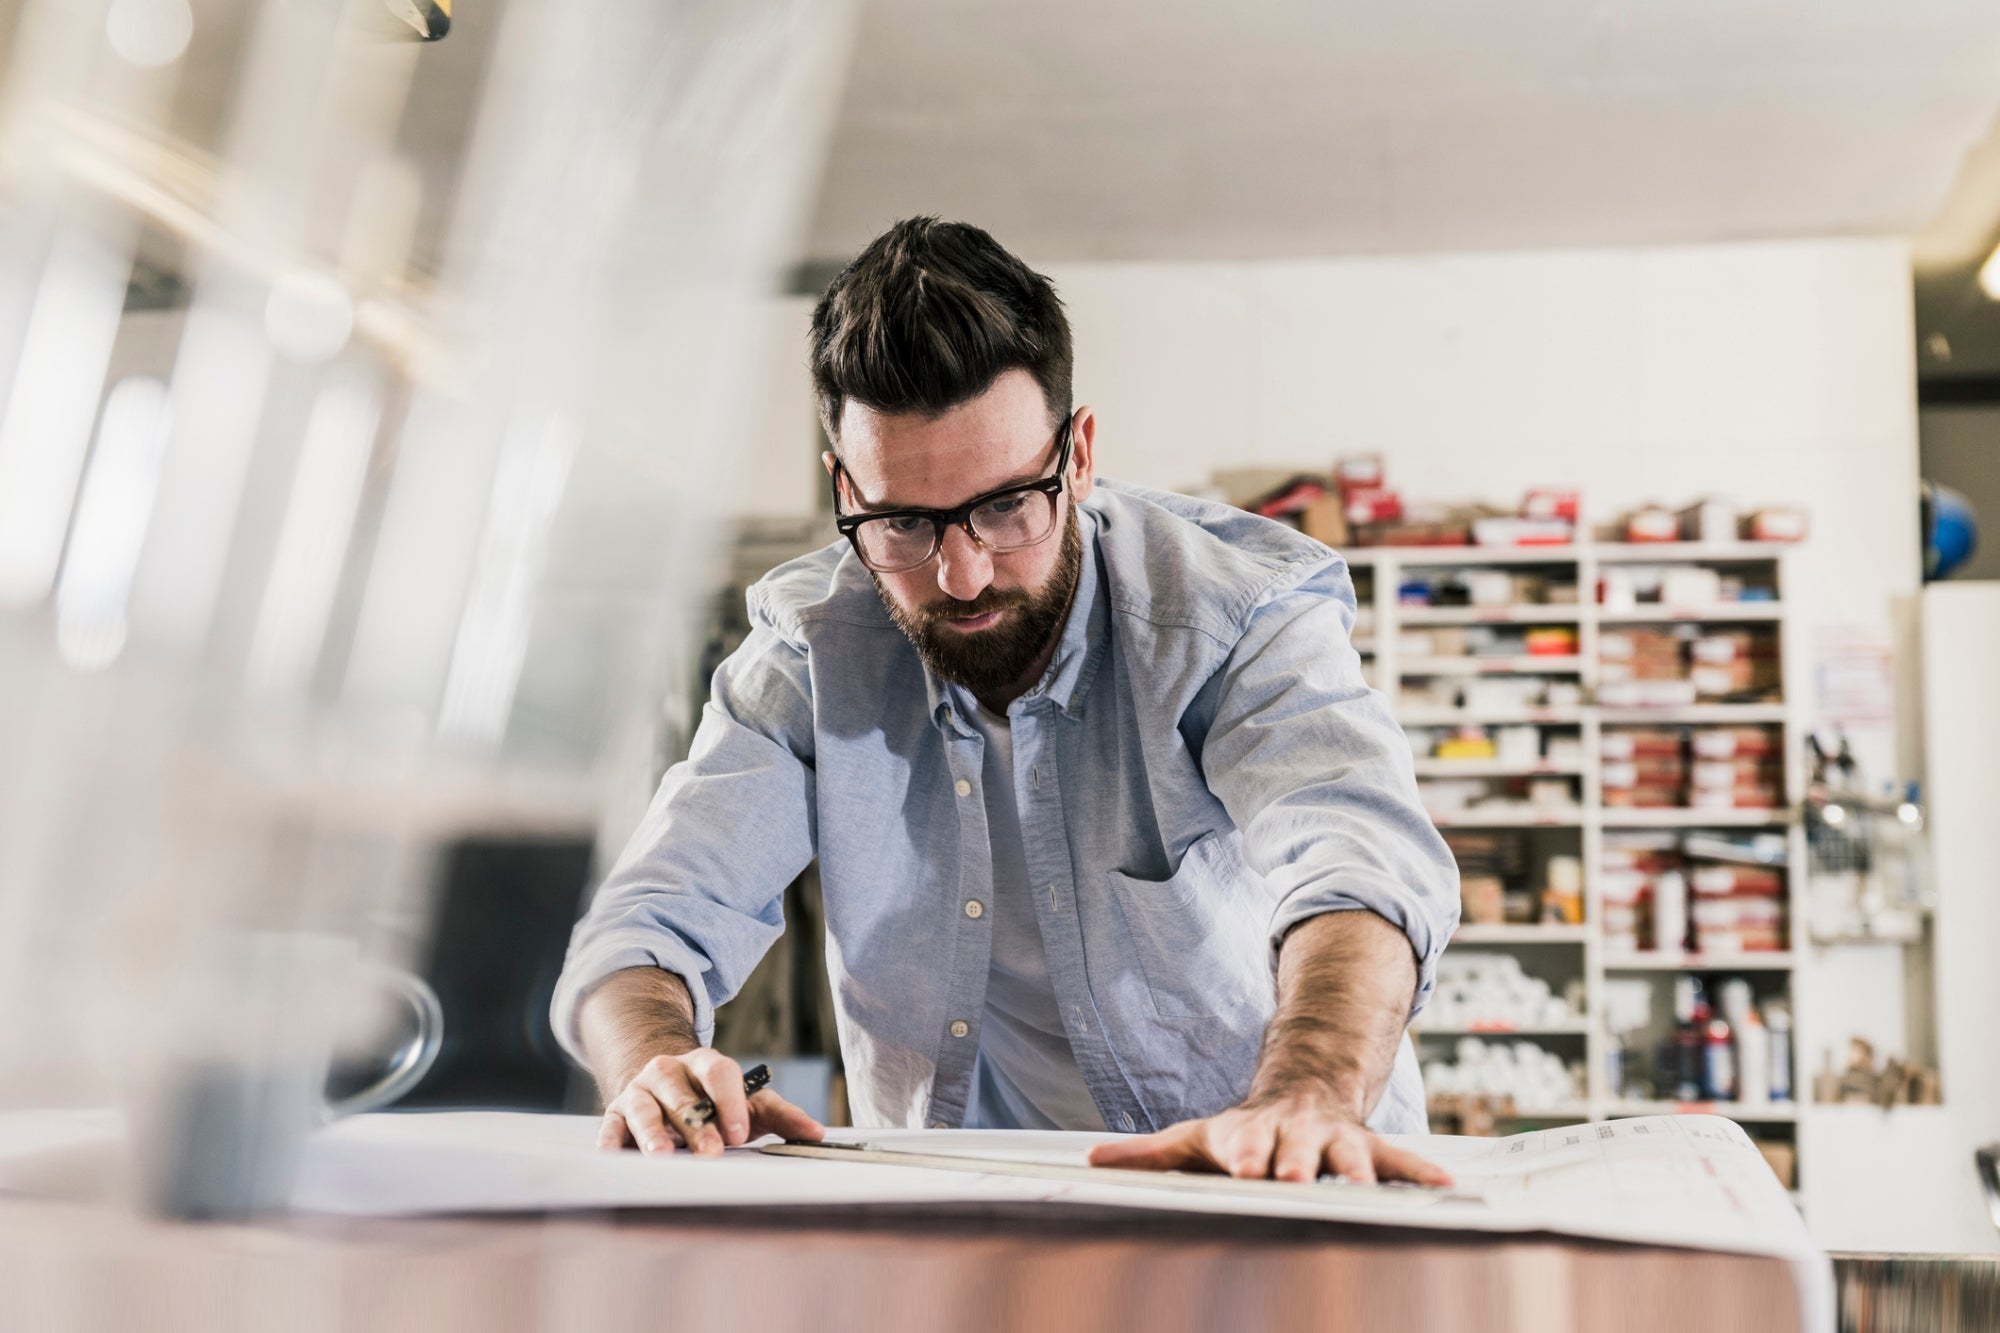 Creativity vs. Hard Work: Which Matters More for Startup Success?